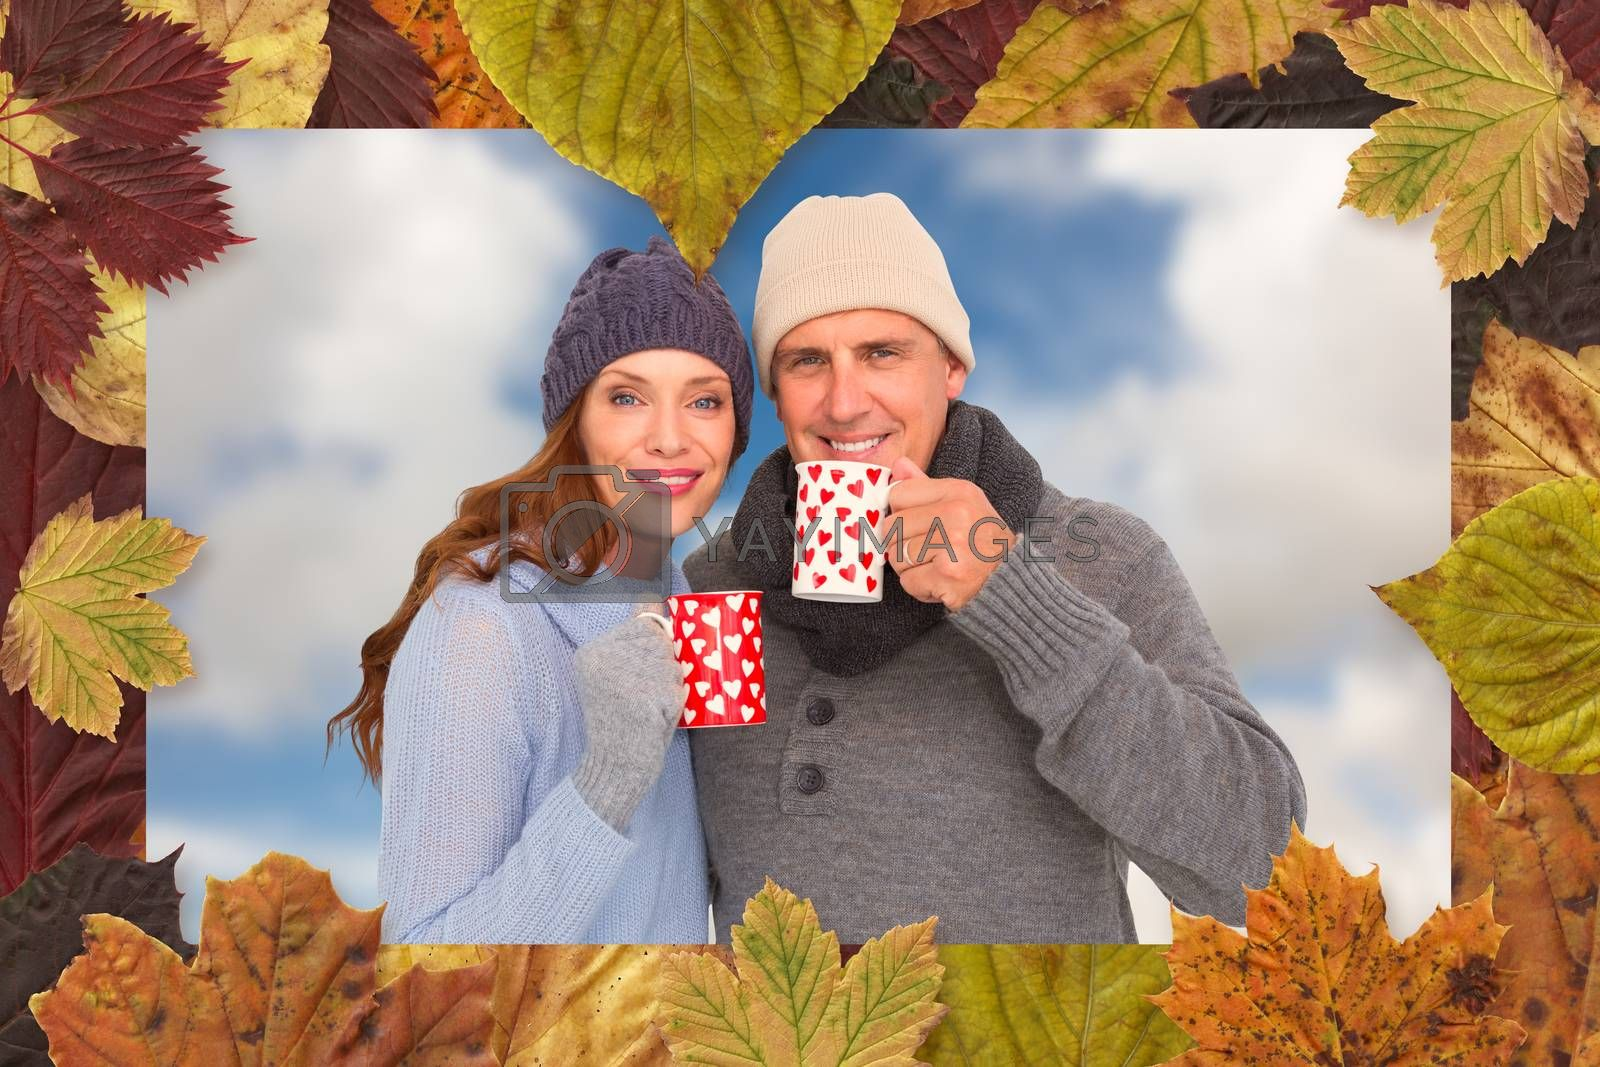 Happy couple in warm clothing holding mugs against blue sky with white clouds